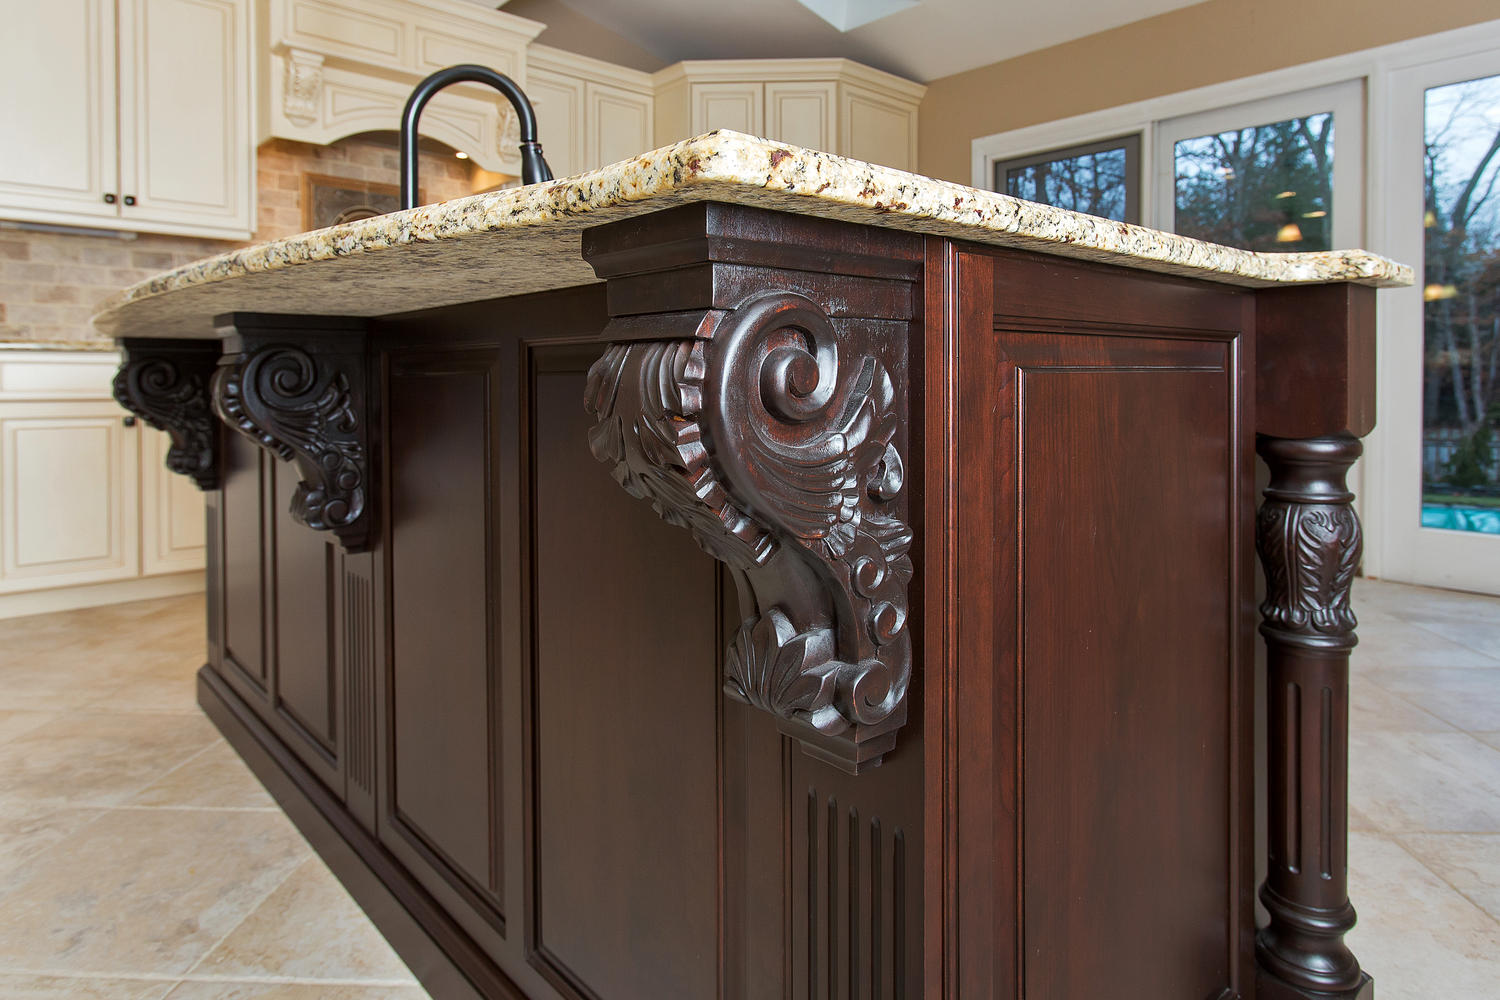 Traditional Kitchen Cabinets Toms River New Jersey By. Daily Mail Kitchen Hacks. Little Kitchen Paris Bbc. Bamboo Kitchen Bench Nz. Kitchen Lighting Edison. Best Kitchen Redo. Make Own Kitchen Desk. Open Kitchen Ideas Photos. Ikea Kitchen Voucher Offer